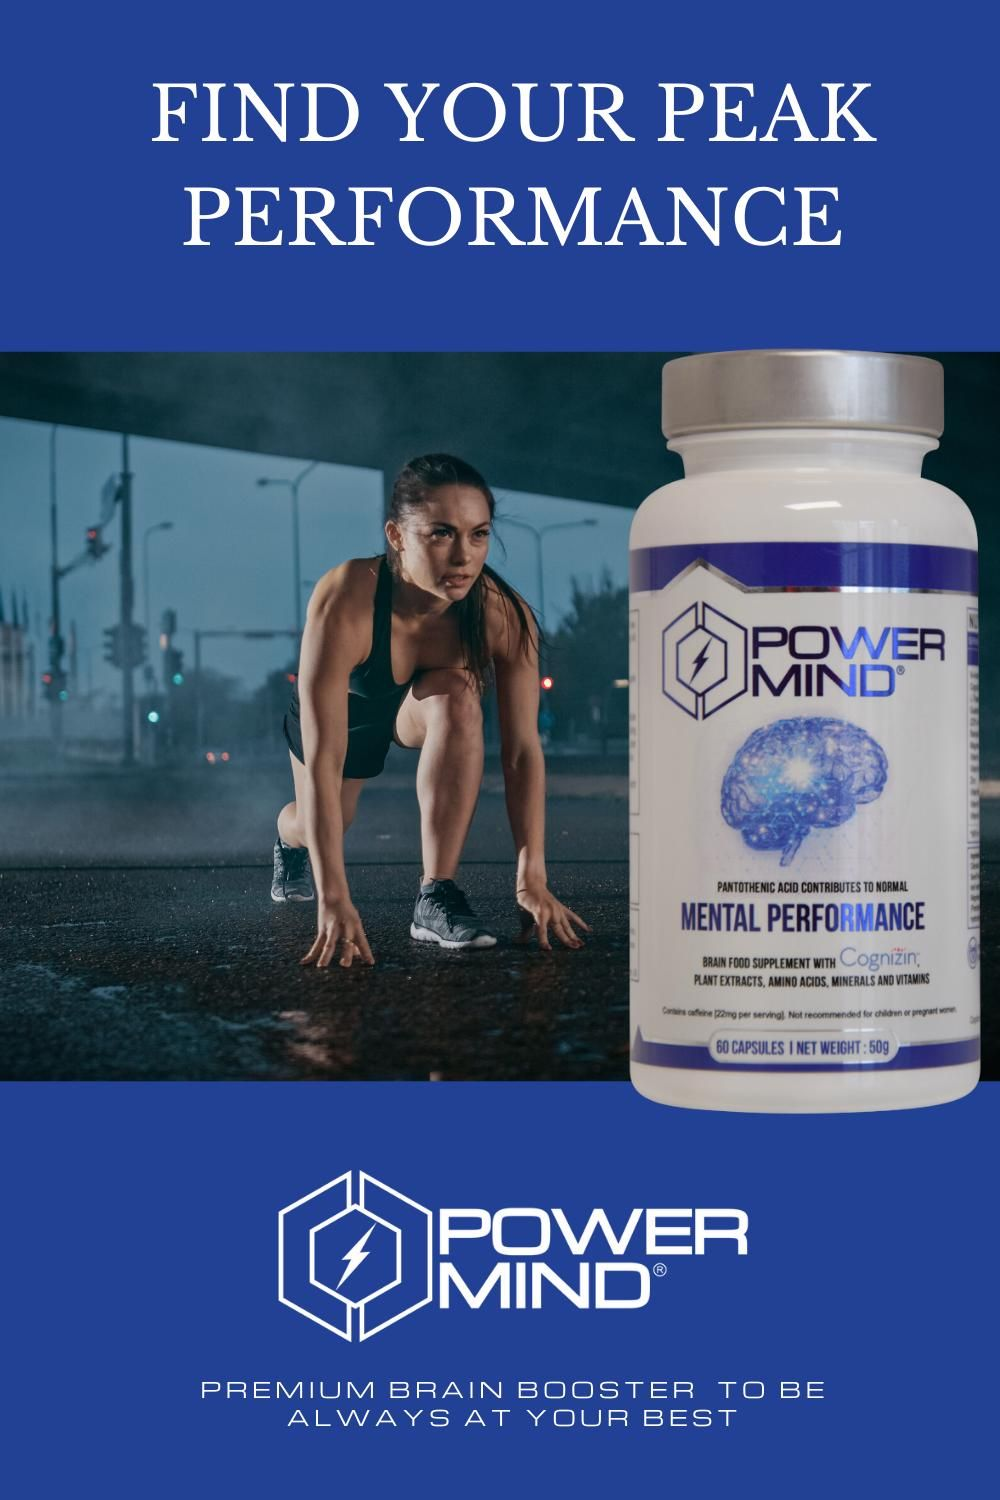 POWERMIND Helps you to find focus, mental clarity and energy needed to reach your peak performance....